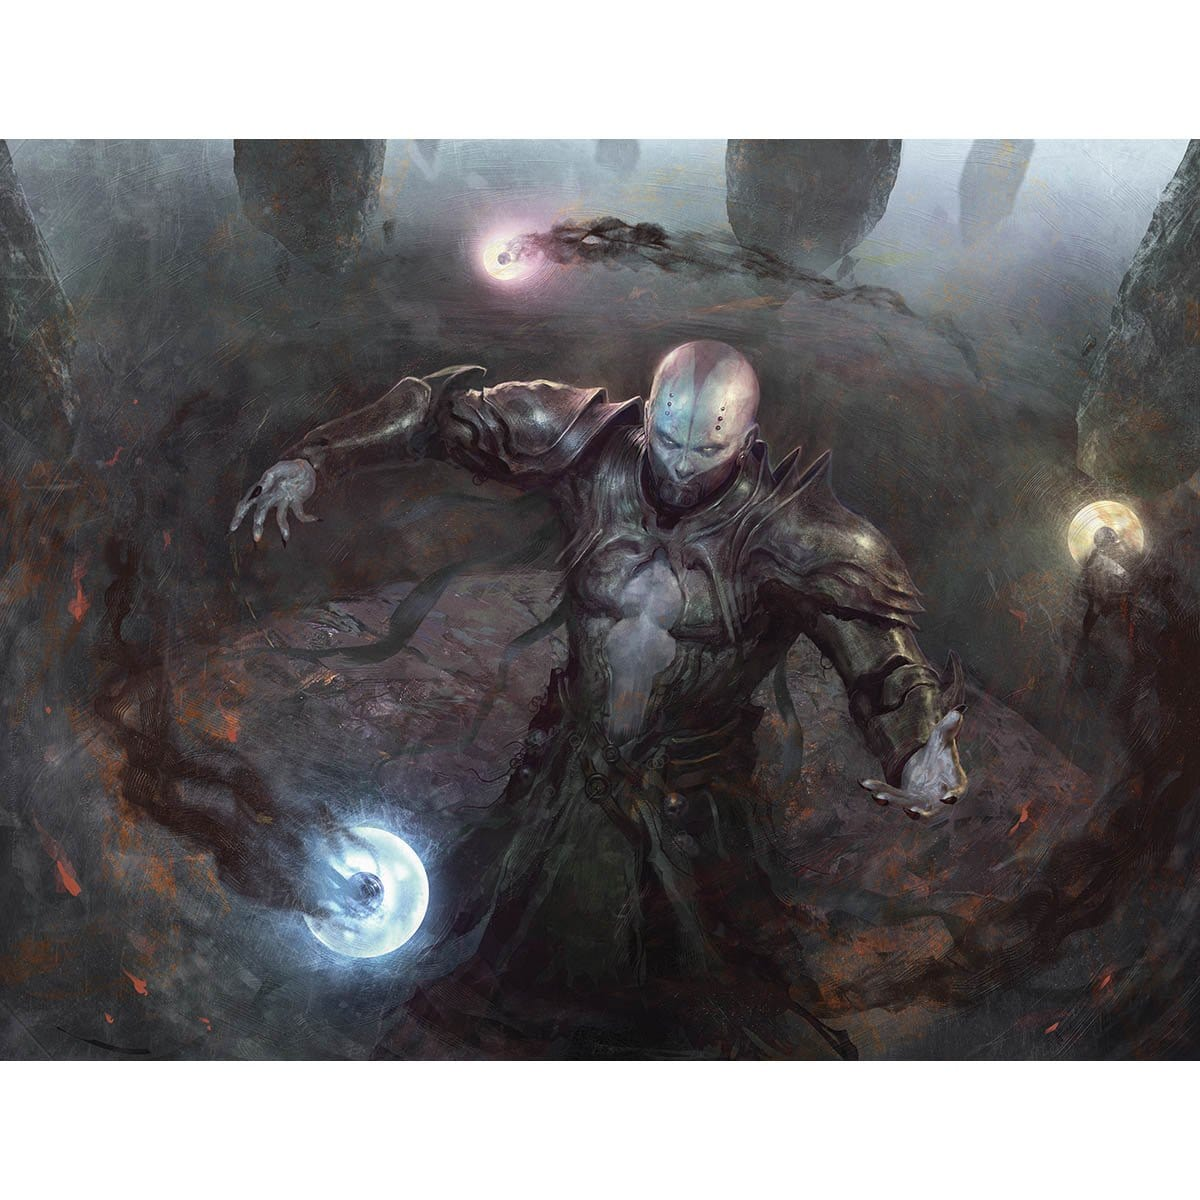 Orbs of Warding Print - Print - Original Magic Art - Accessories for Magic the Gathering and other card games